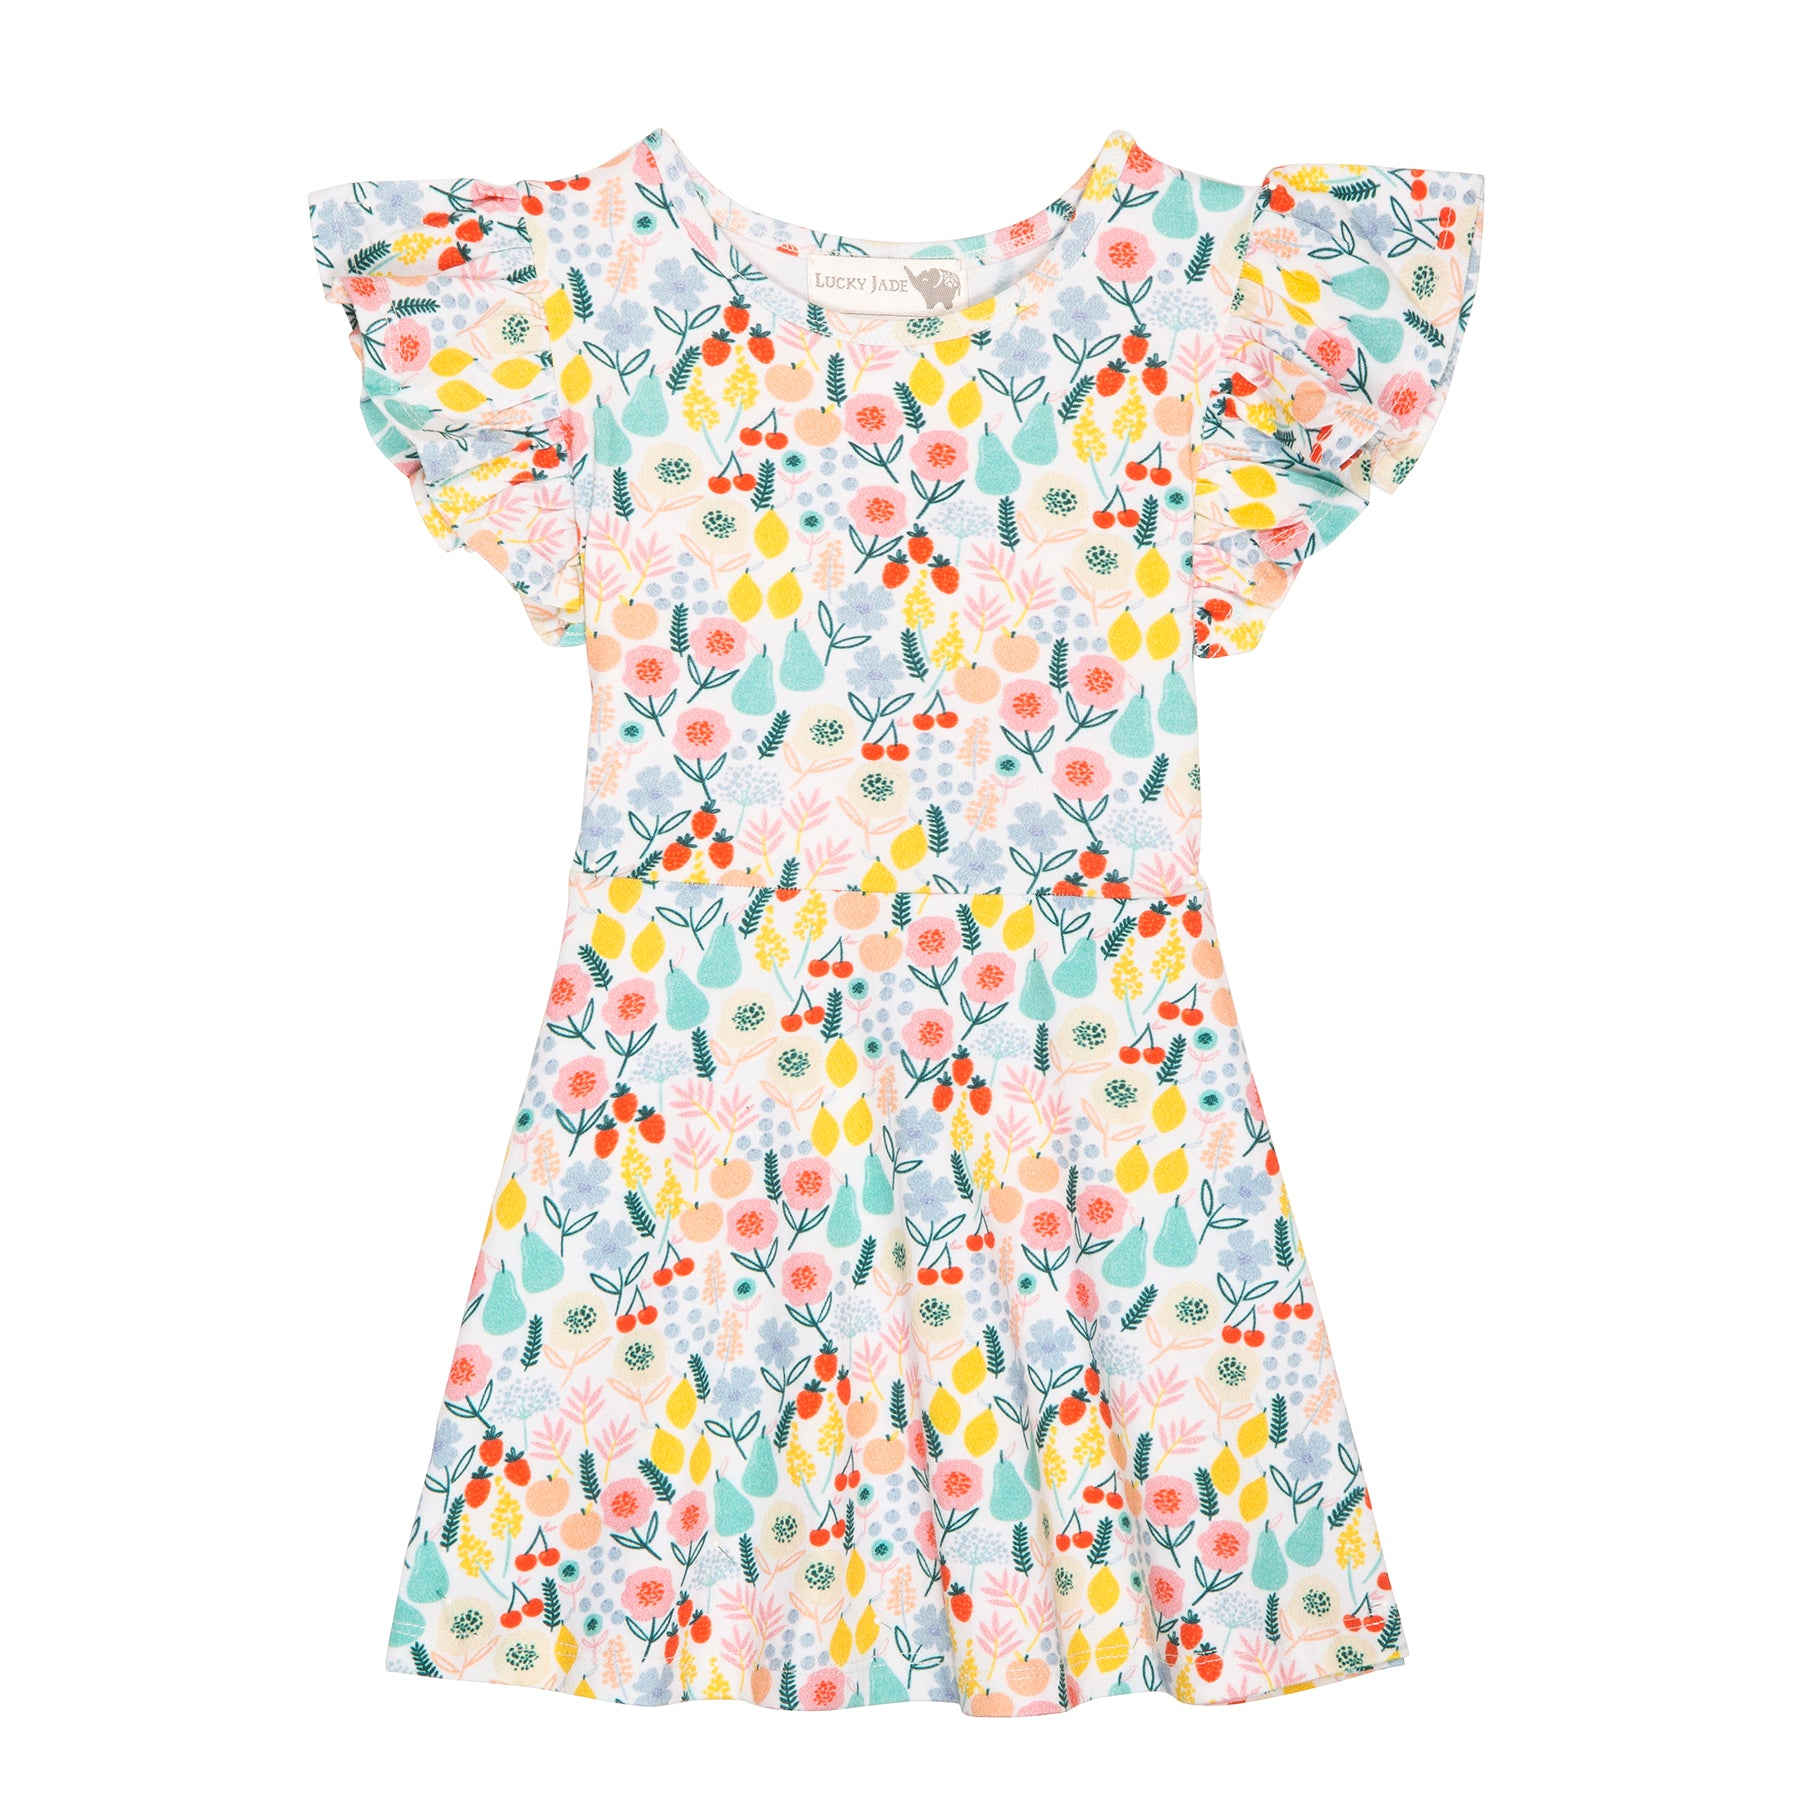 Floral fruit flutter sleeve dress